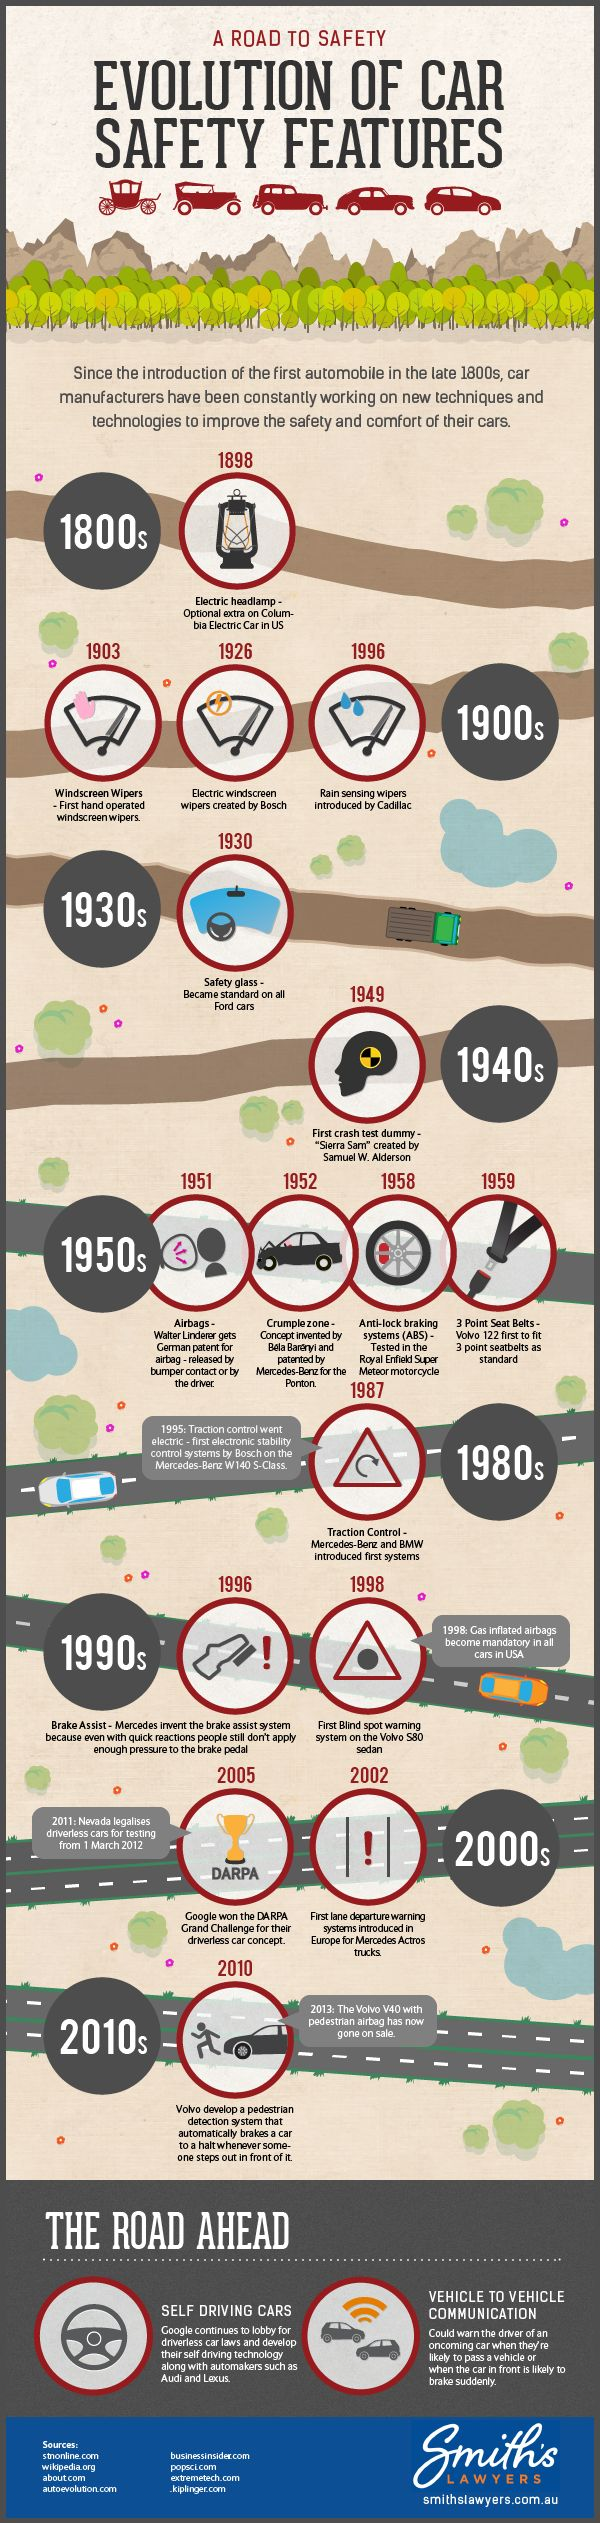 120 Years of Car Safety Evolution @ Pinfographics